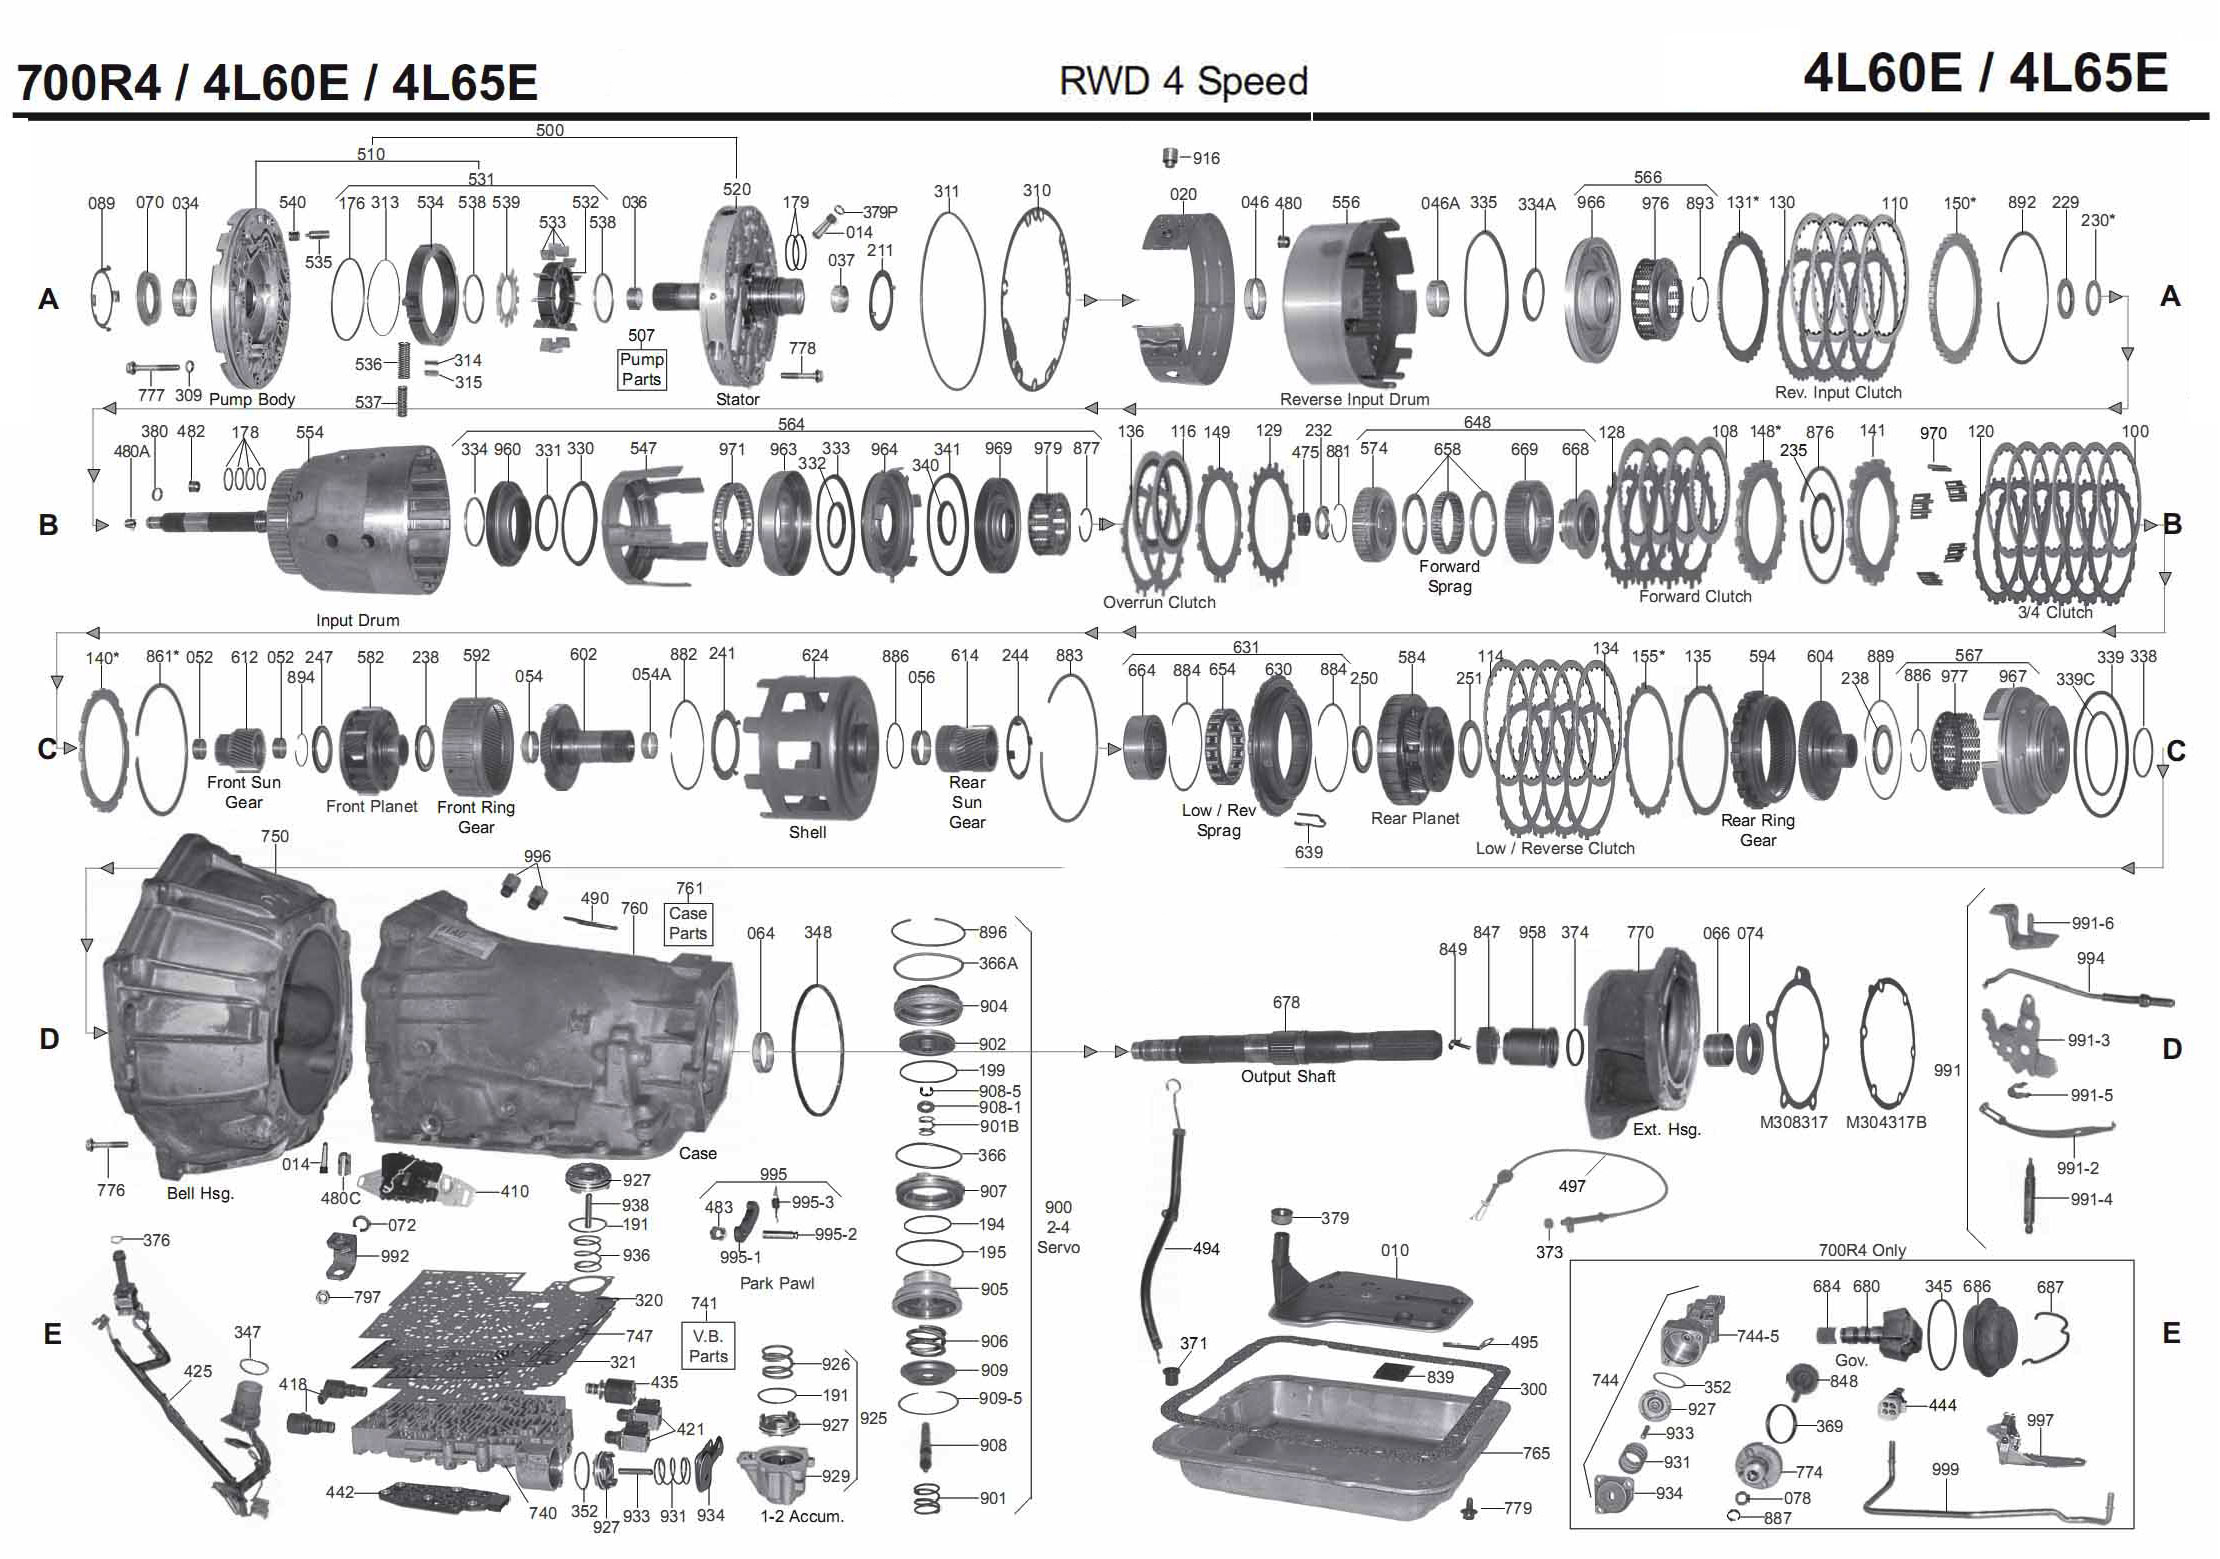 Transmission rebuild guide 700R4 (4L60E, 4L65E) manuals